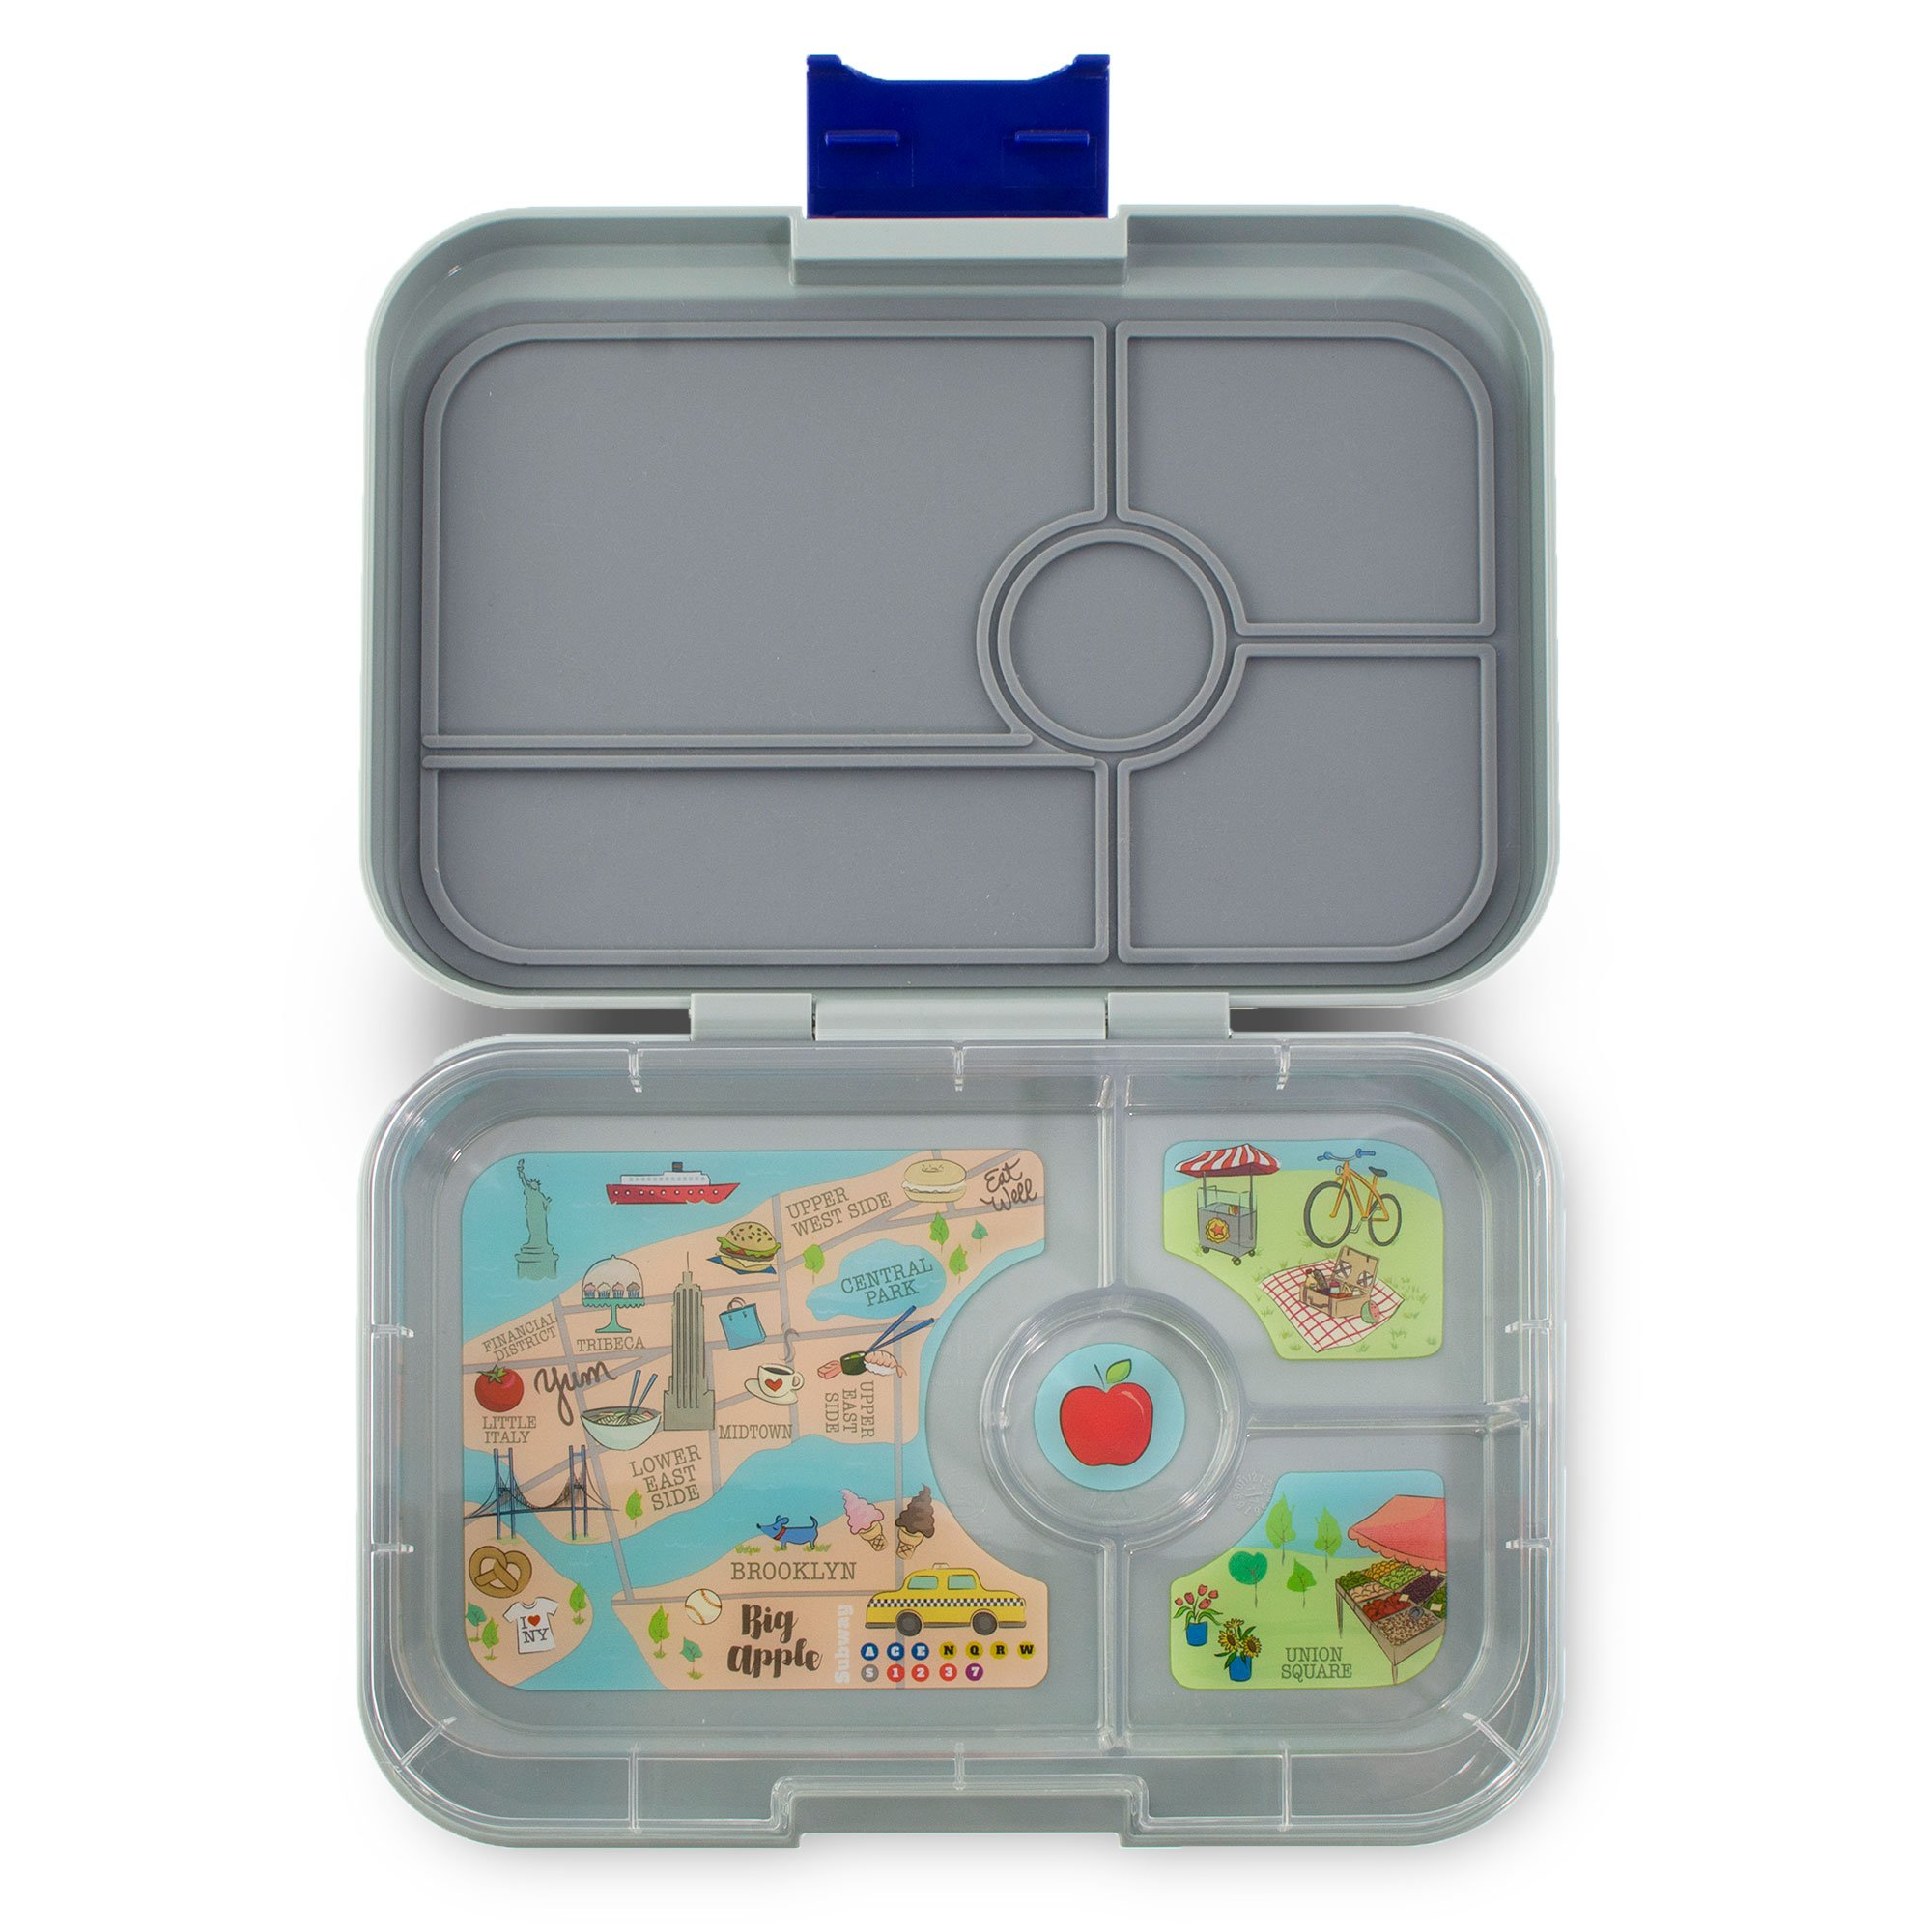 YUMBOX TAPAS Larger Size (Flat Iron Gray) Leakproof Bento lunch box with 4 compartment NYC illustrated removable food tray for Adults, Teens & Pre-teens